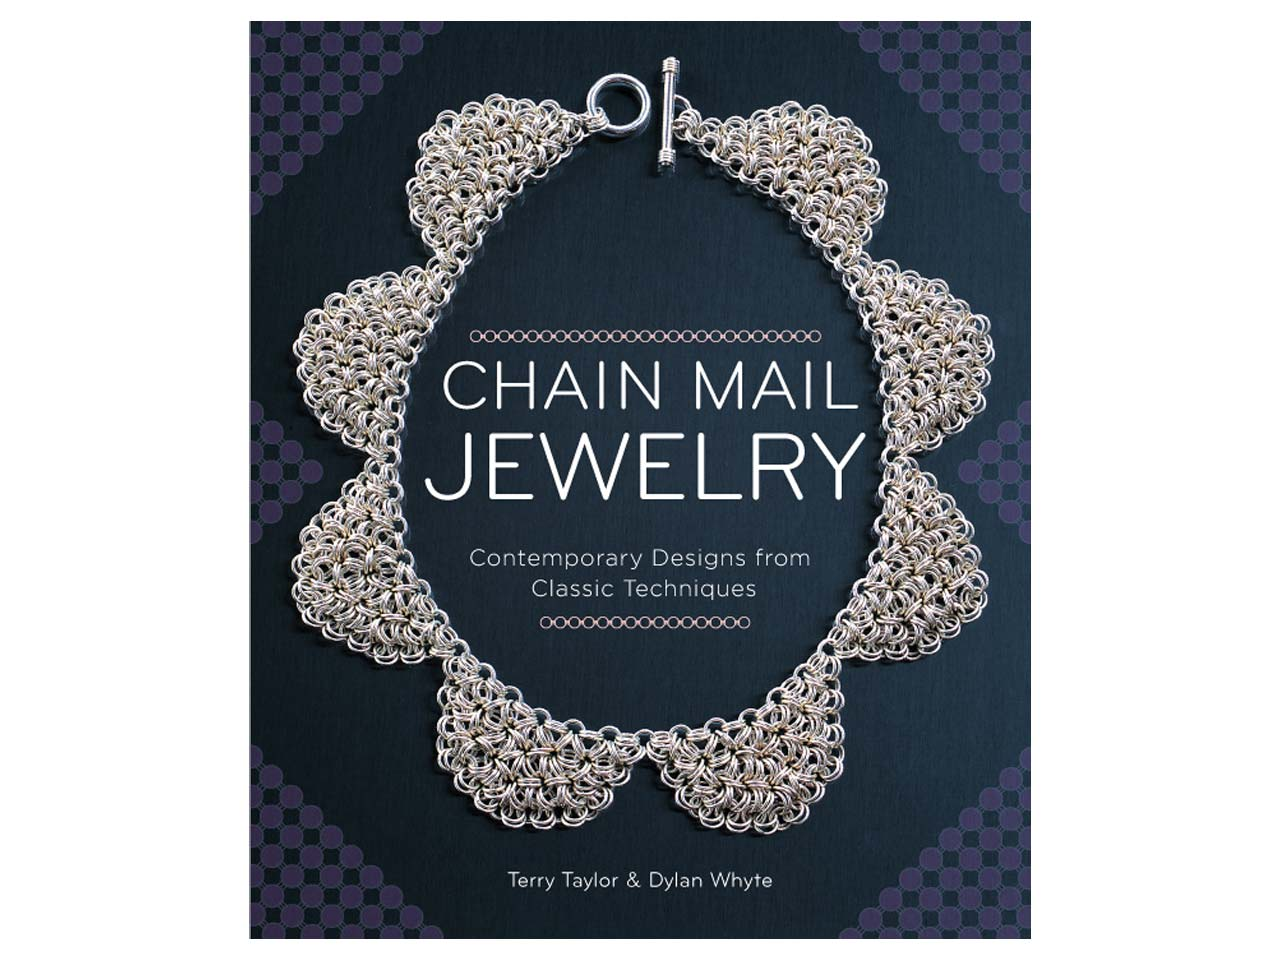 Chain Mail Jewelry By Terry Taylor And Dylon Whyte